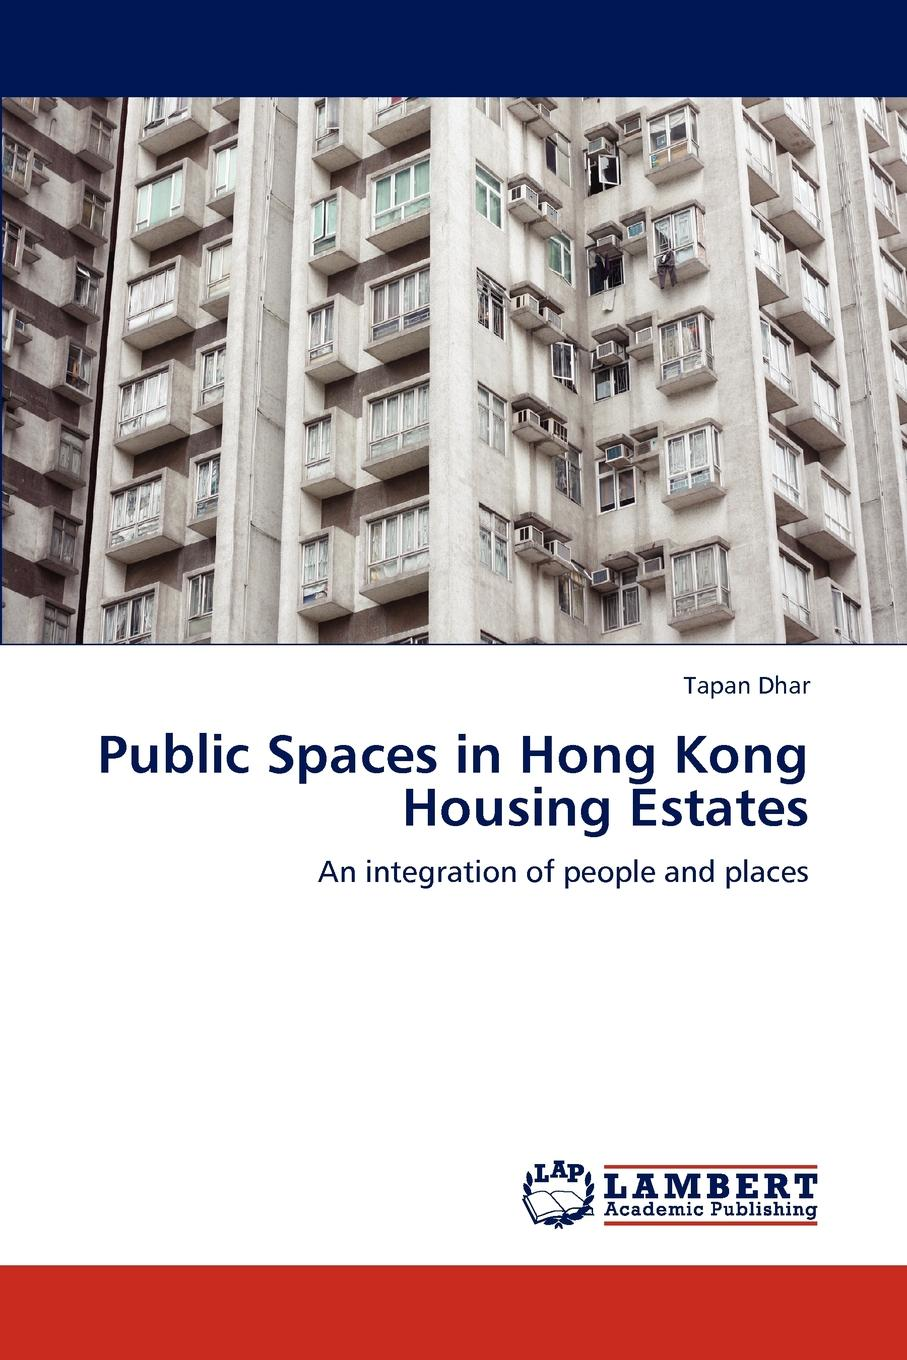 Tapan Dhar, Dhar Tapan Public Spaces in Hong Kong Housing Estates crush hong kong